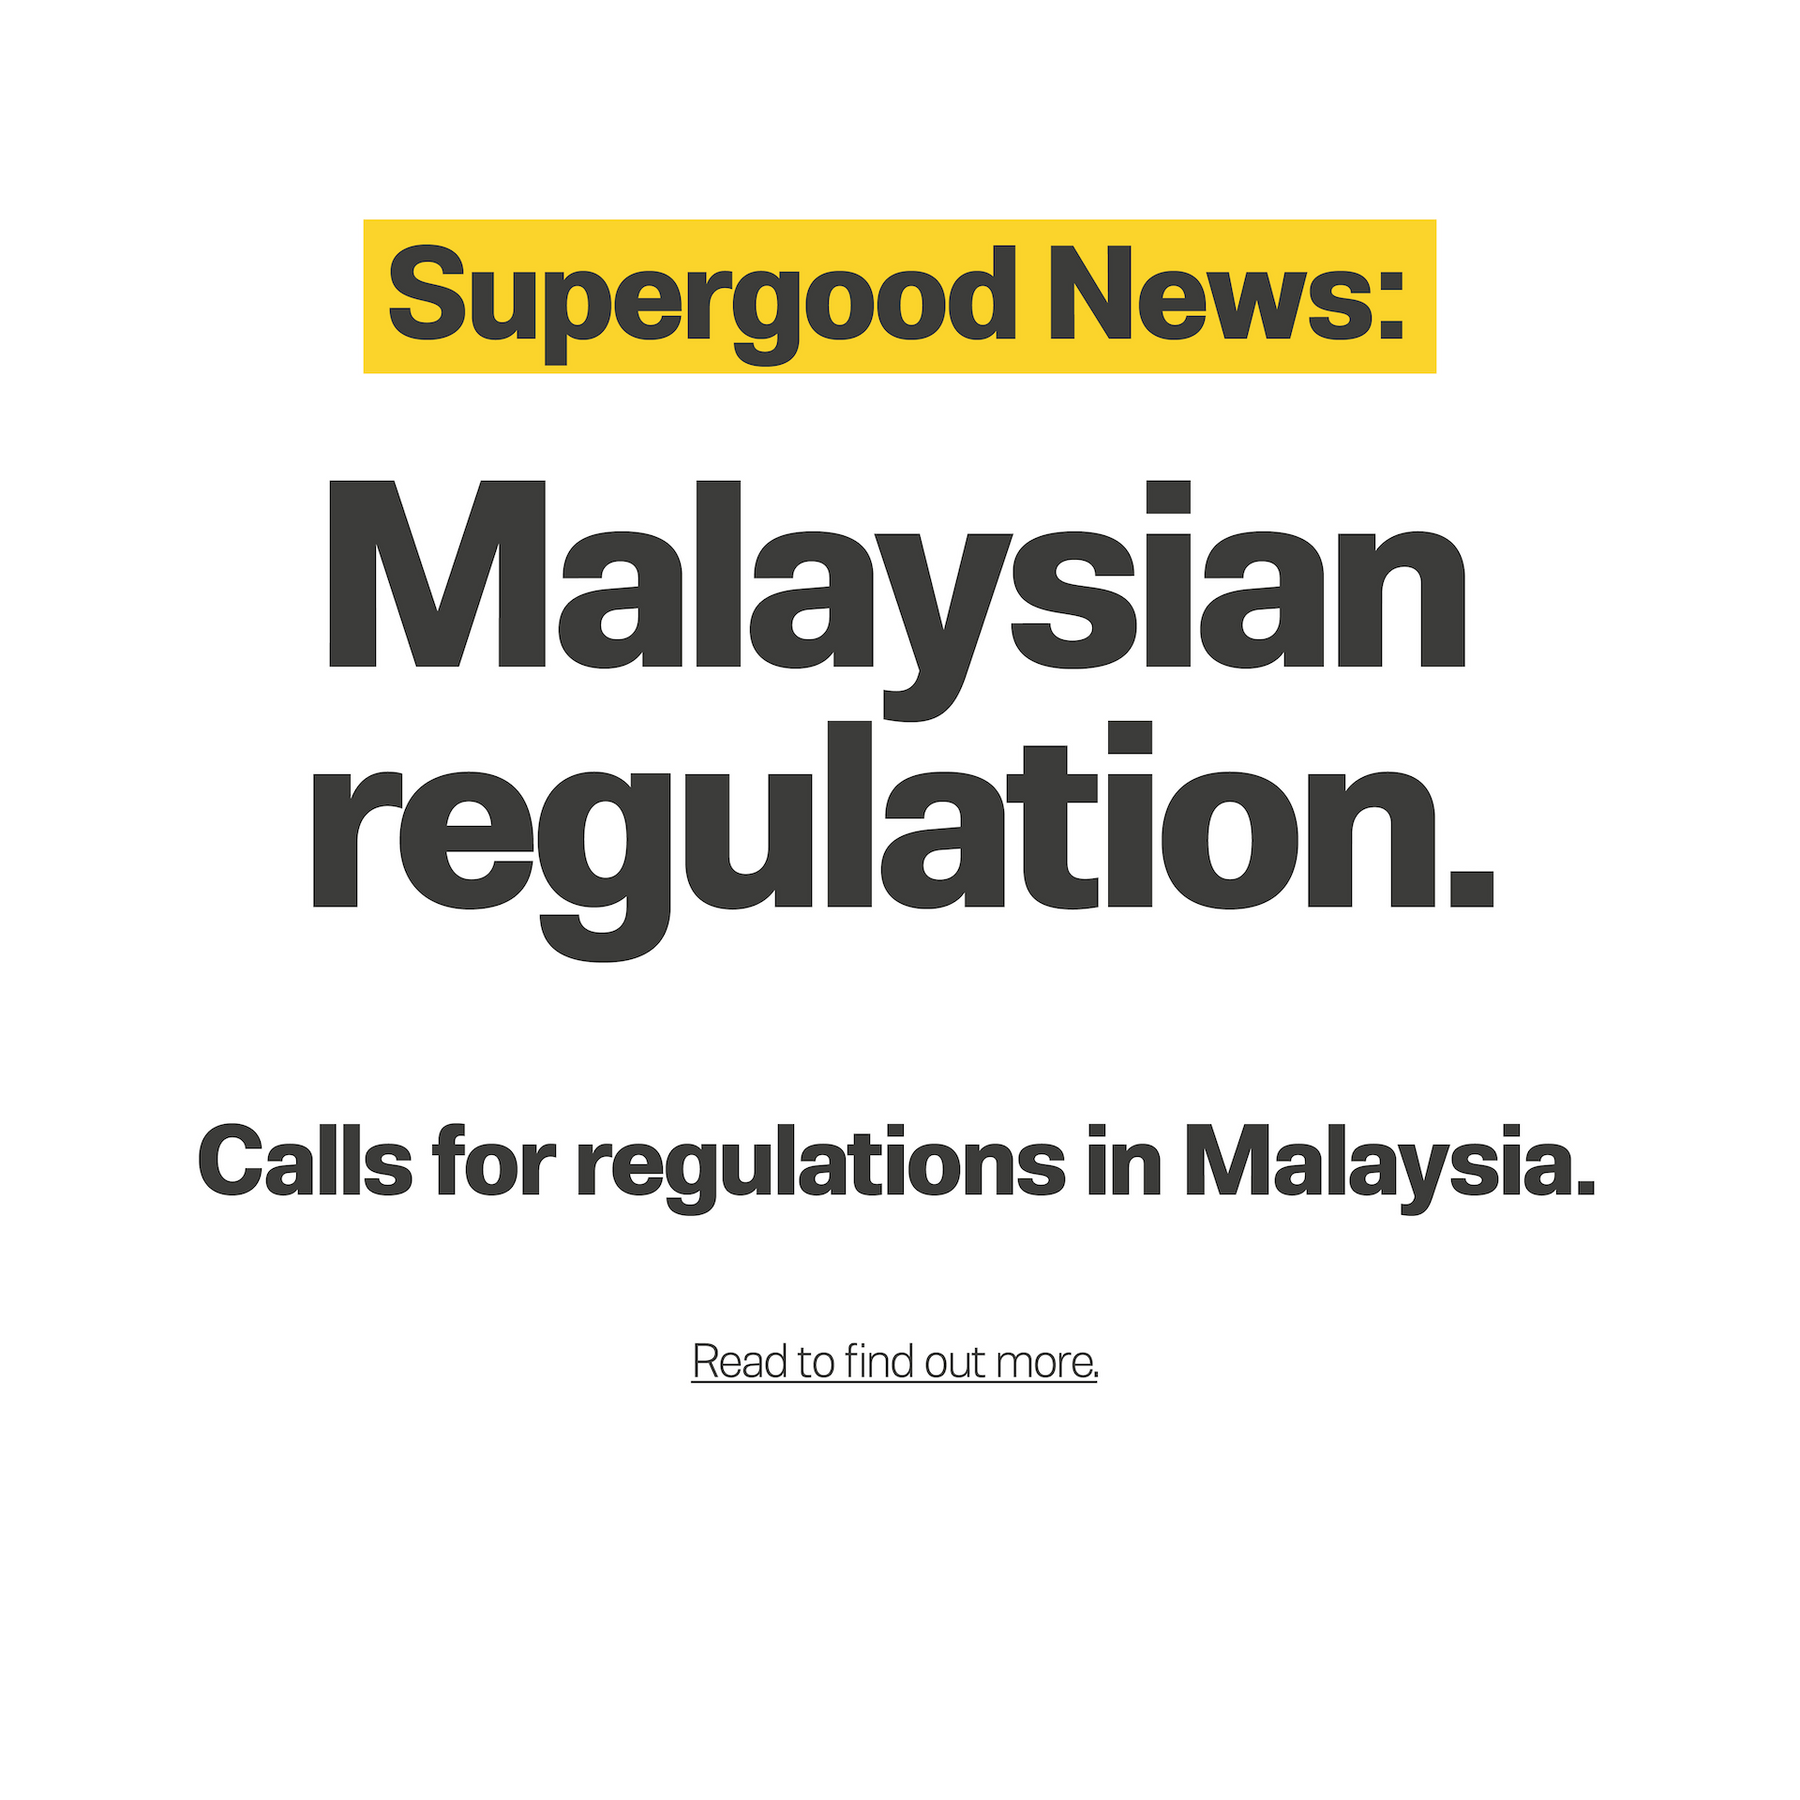 Calls for regulations in Malaysia